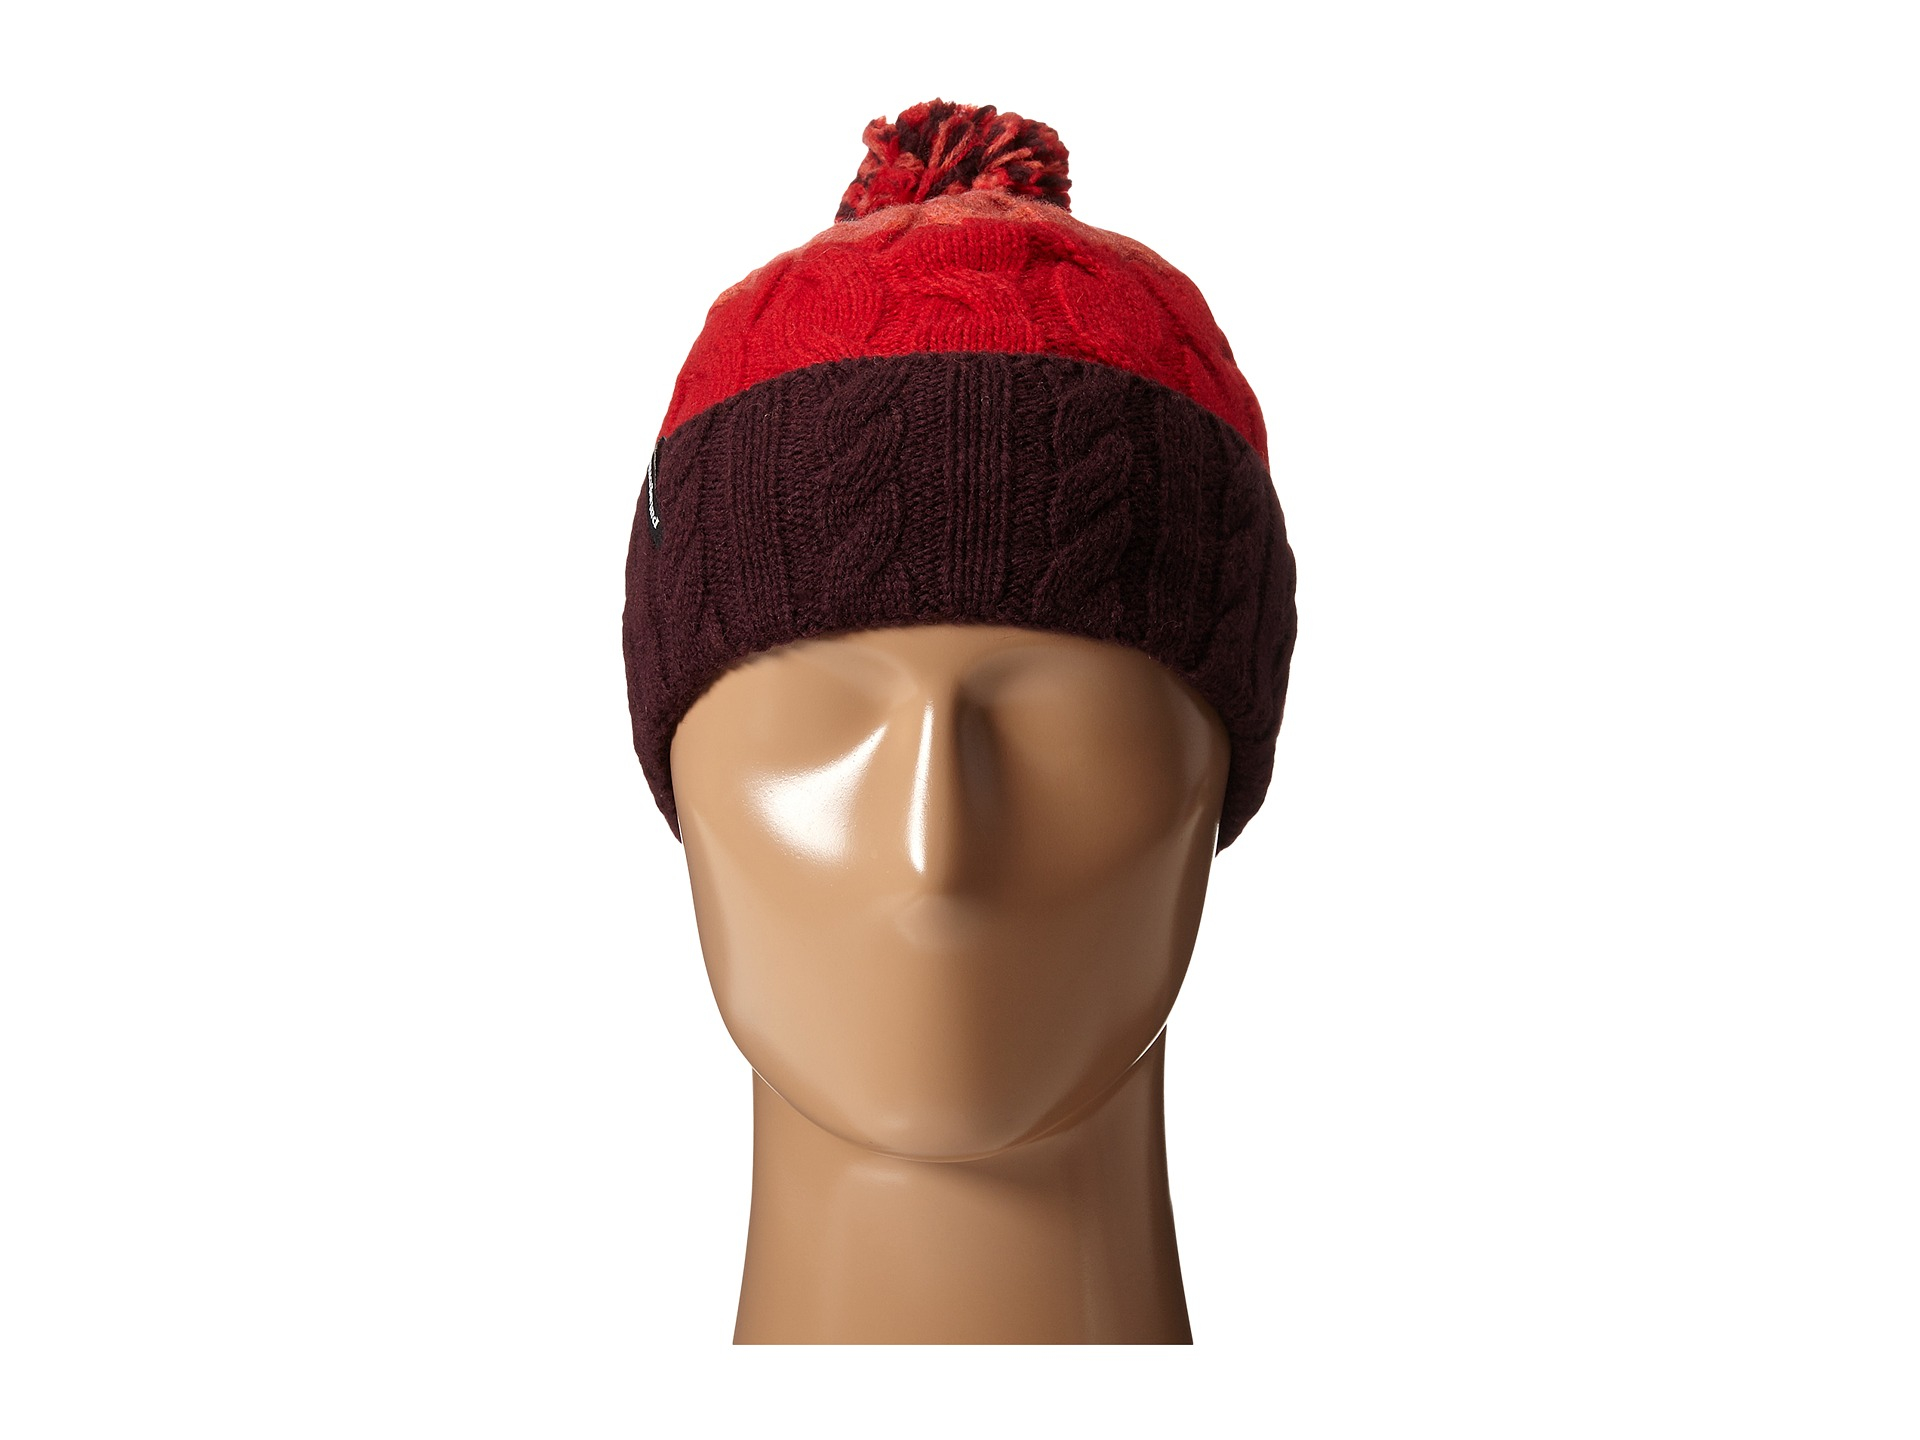 Lyst - Patagonia Pom Beanie in Red for Men cdd39cb6b94